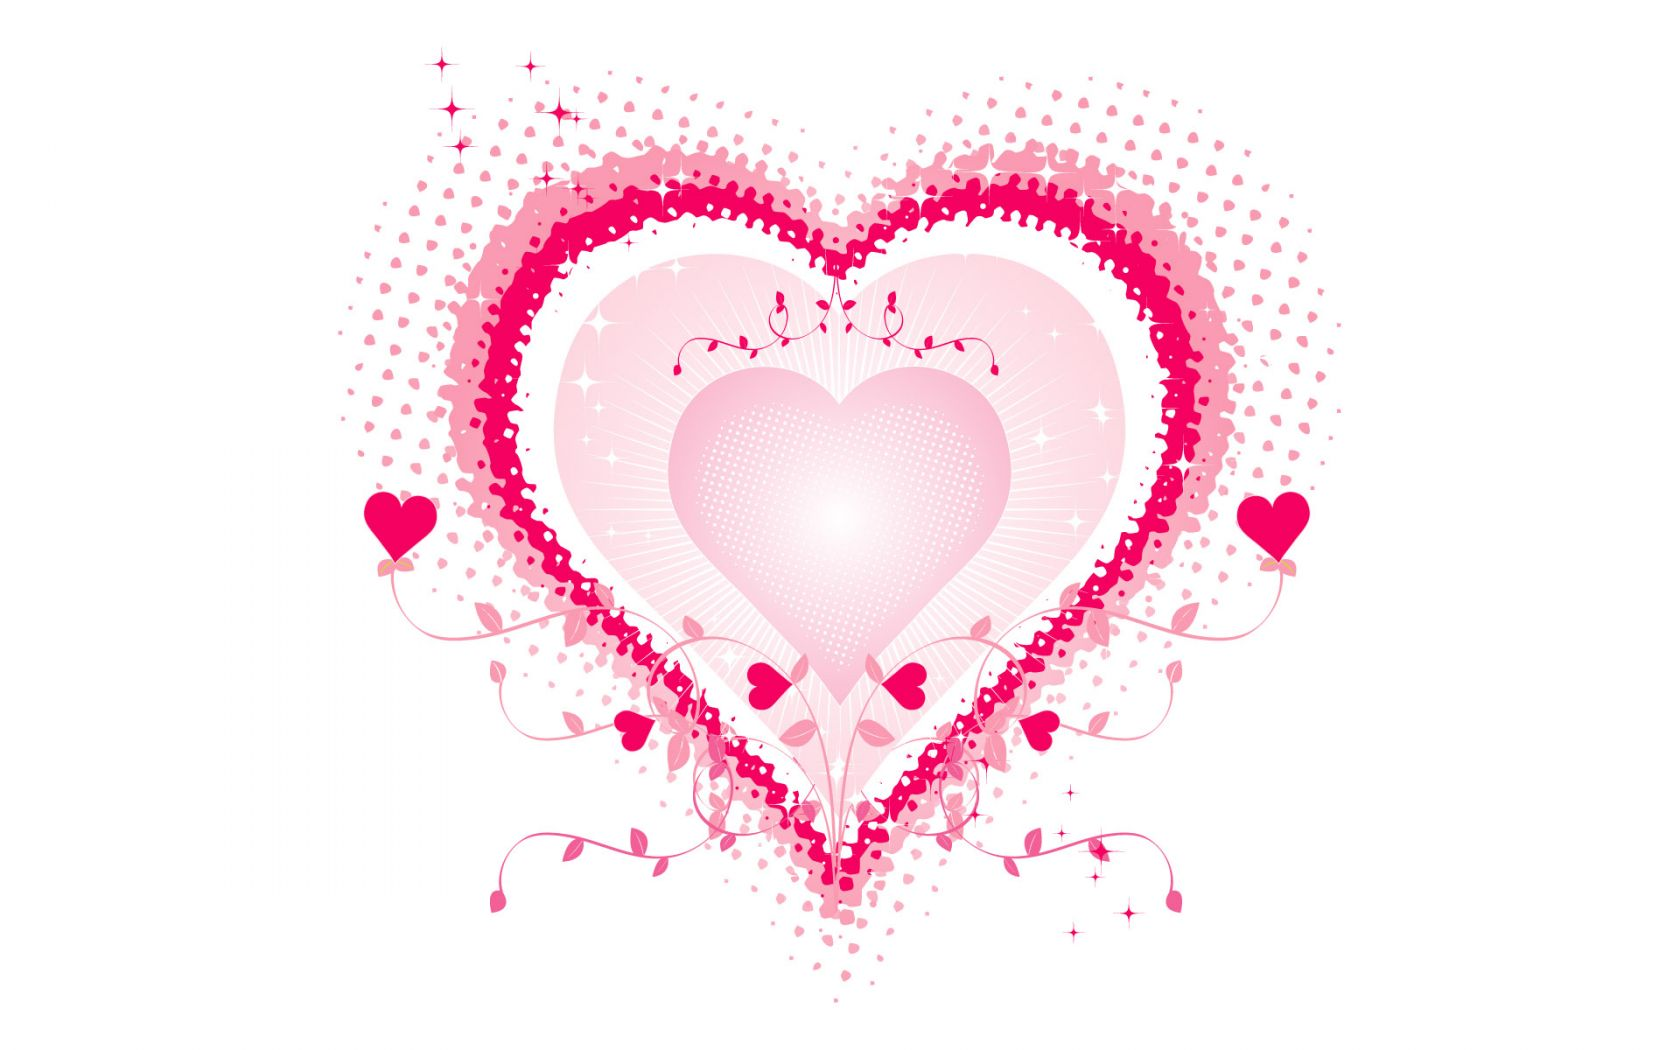 Pink Love Heart Backgrounds - WallpaperSafari